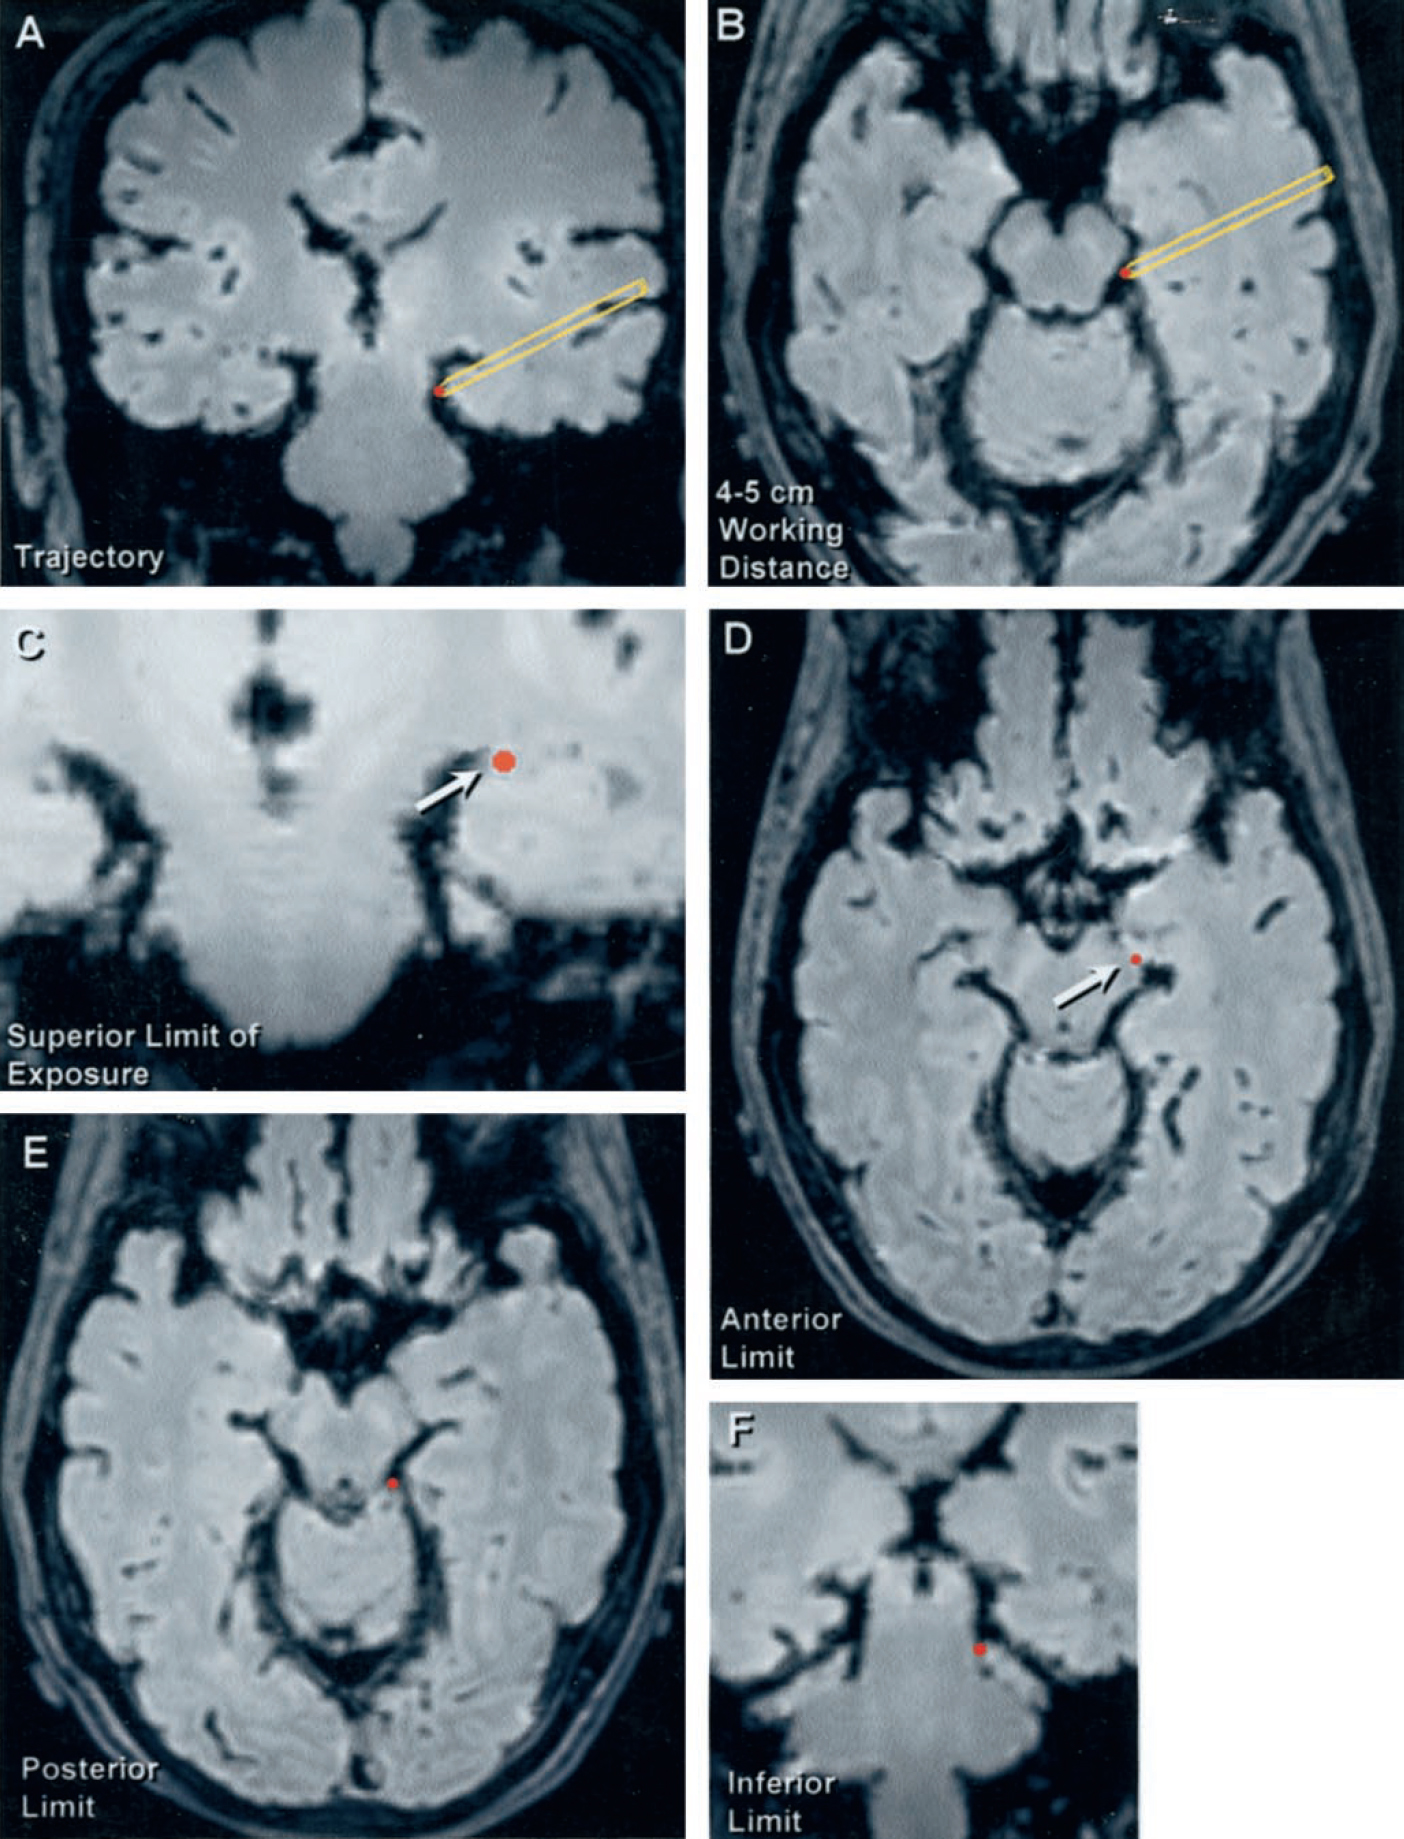 Figure 9. Stealth magnetic resonance imaging scans of the transinsular transchoroidal approach. A and B, trajectory of the approach through the sylvian fissure and inferior limiting sulcus to the ambient cistern. C, superior limit of the exposure through the choroidal fissure to the ambient cistern. D, anterior limit of the exposure at the inferior choroidal point in the posterior end of the crural cistern. E, posterior limit of exposure, in most hemispheres, at the posterior ambient cistern. F, inferior limit of exposure within the lower part of the ambient cistern. Note how the superior-to-inferior trajectory of the transinsular approach allows for greater inferior exposure of the ambient cistern than through the transtemporal transchoroidal approach as illustrated in Figure 7. Arrows, the limits of the exposure. (Images courtesy of AL Rhoton, Jr.)